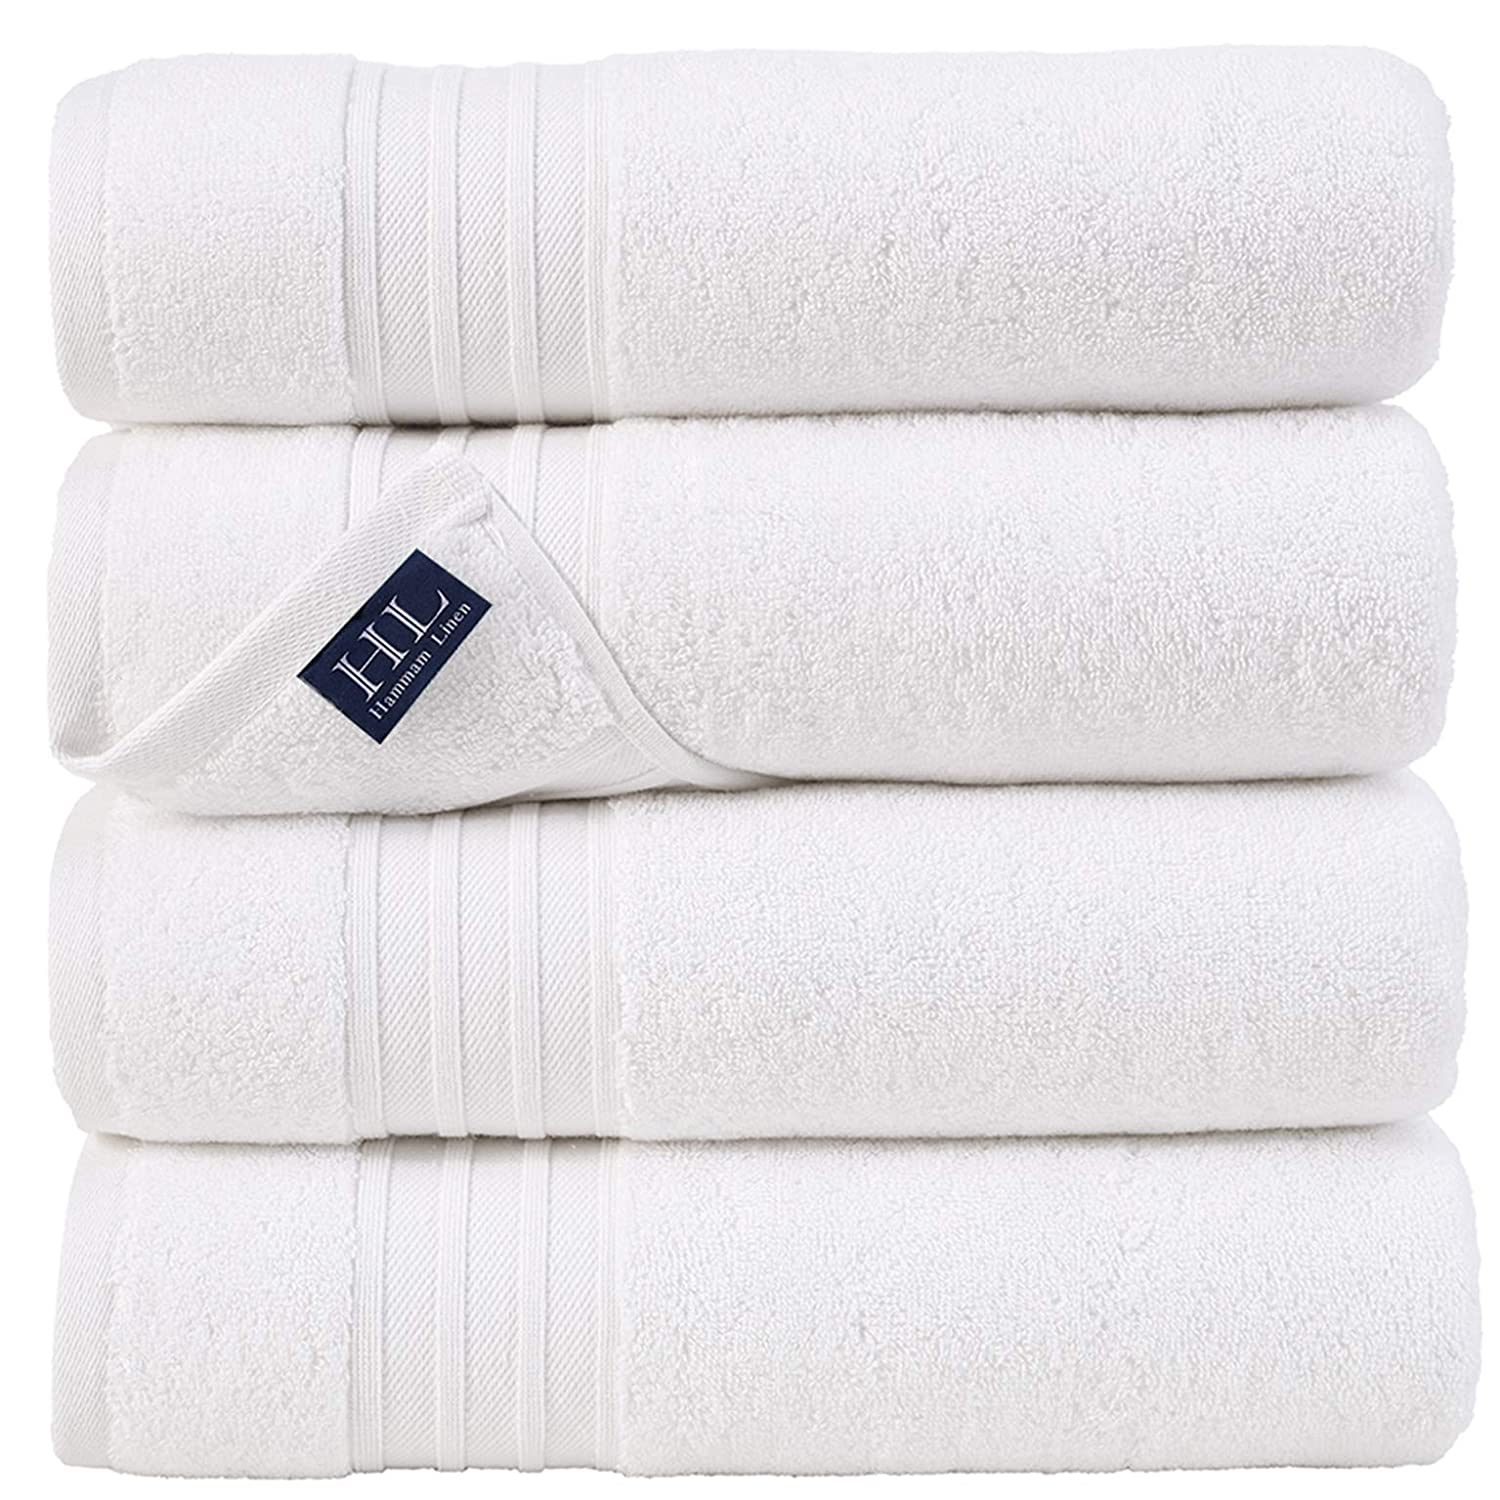 Hammam Linen Milas Collections Ultra Soft Turkish Bath Towels - (27 x 54 inches) - 4 Pieces Towel Set - 100% Cotton Towels White